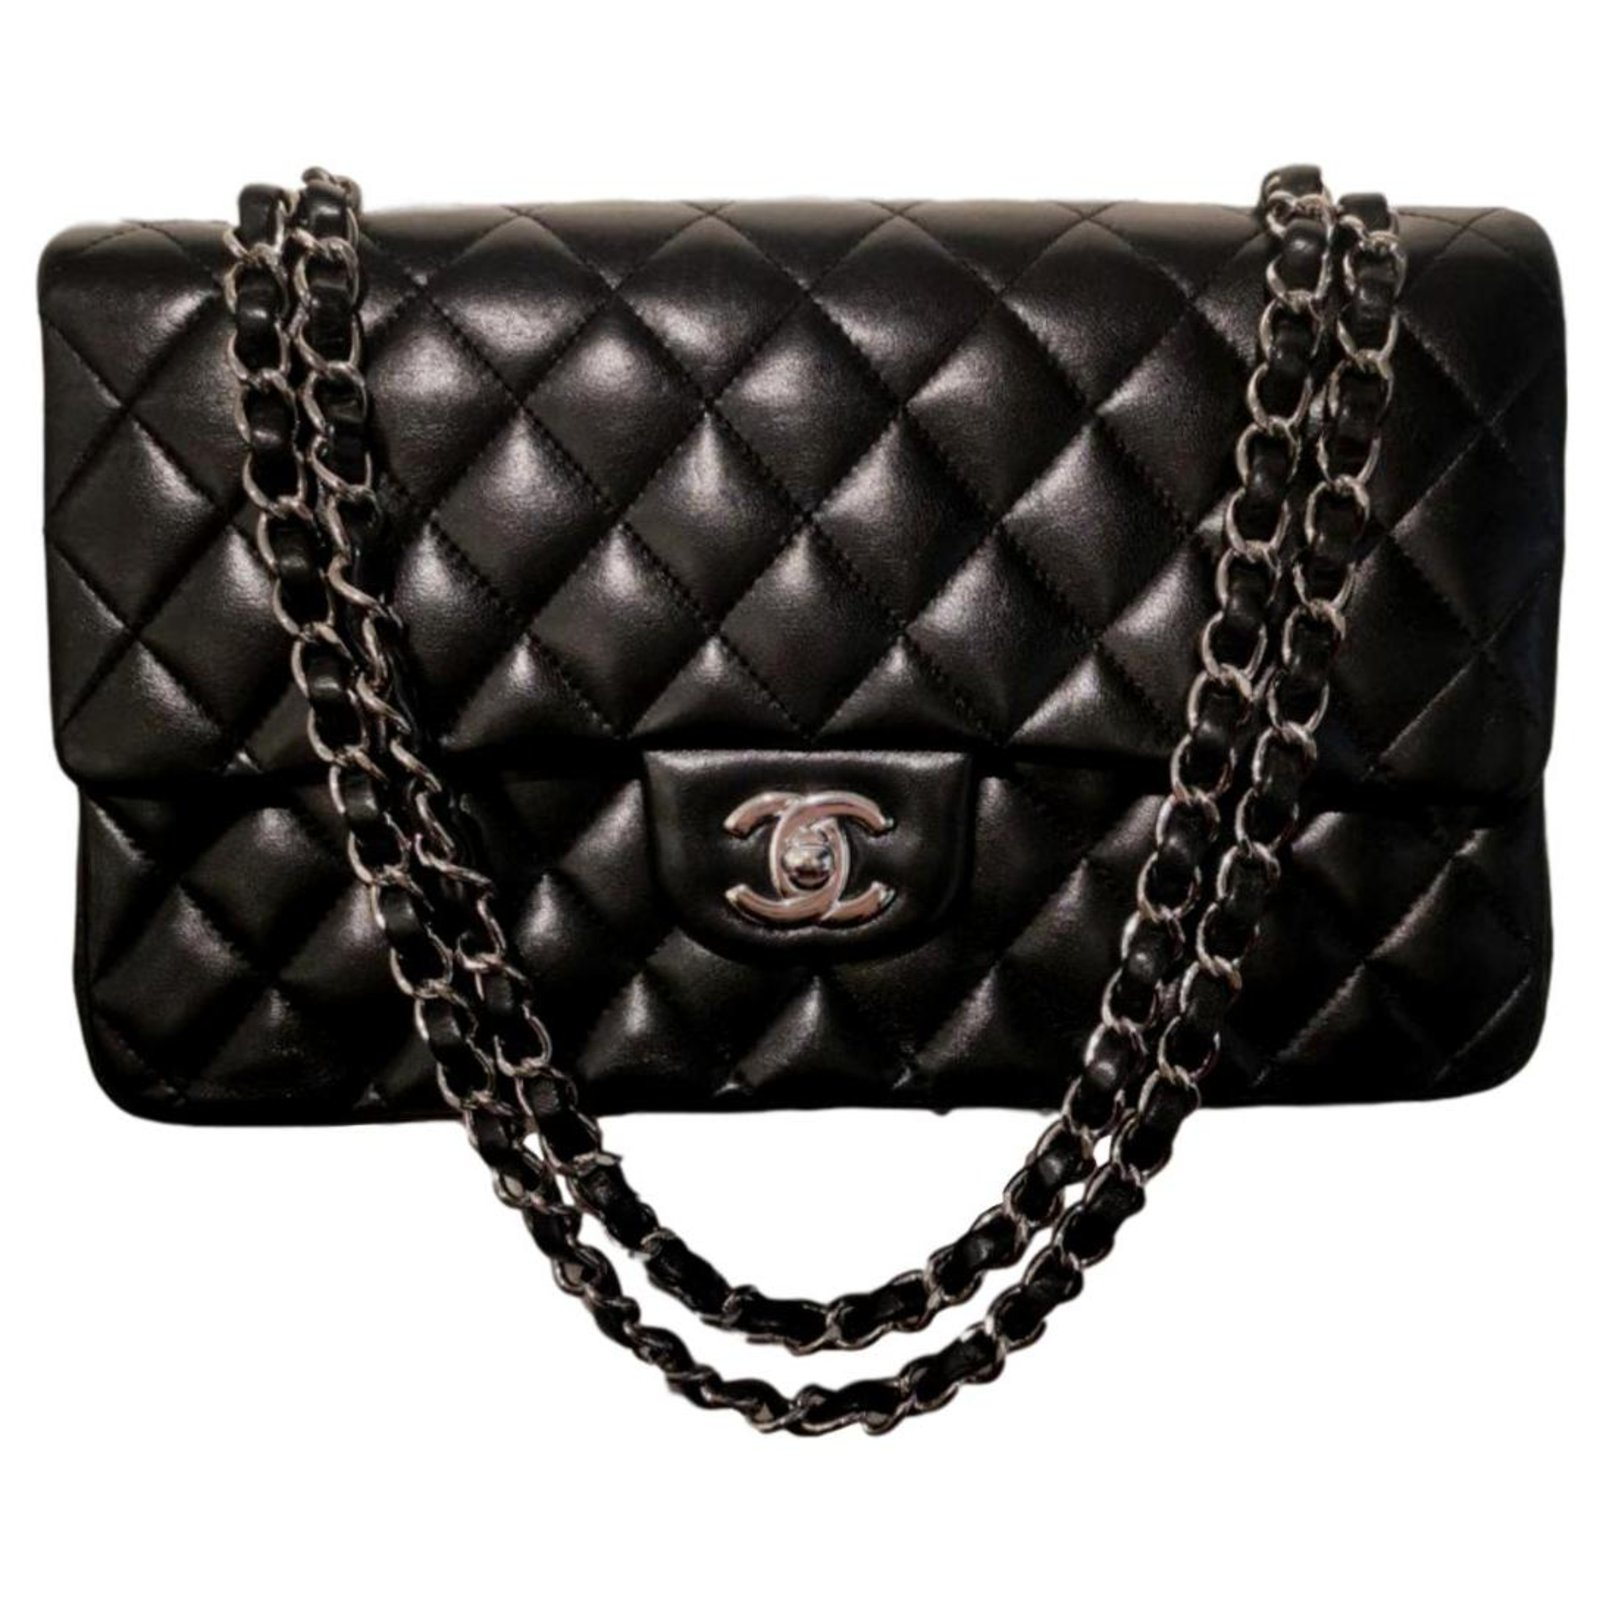 better in stock outlet boutique Chanel Chanel black lambskin medium classic flap bag GHW Handbags ...